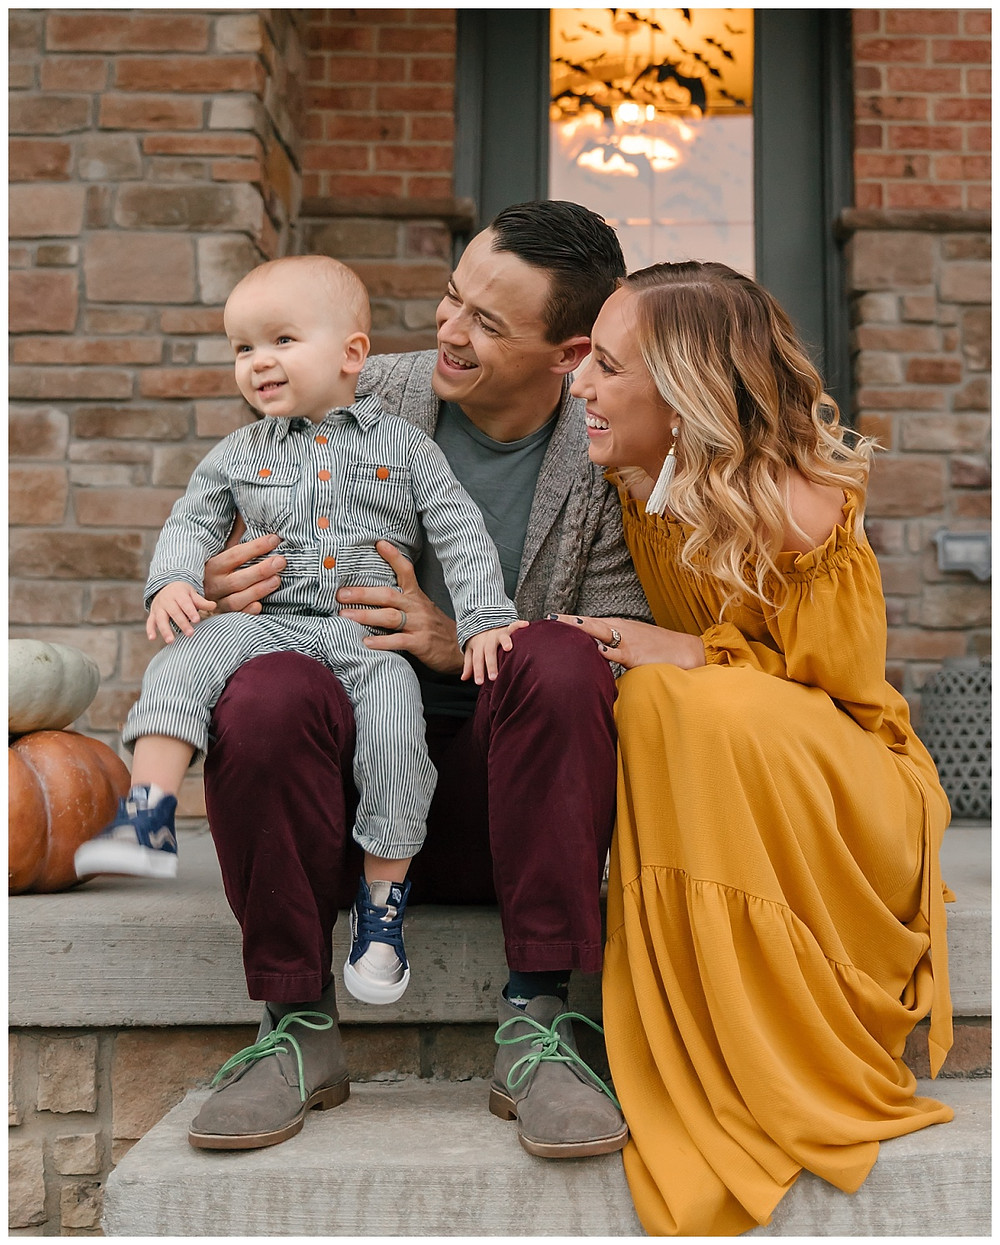 Family photo with toddler in Pittsburgh, Pa by LeeAnn K Photography.